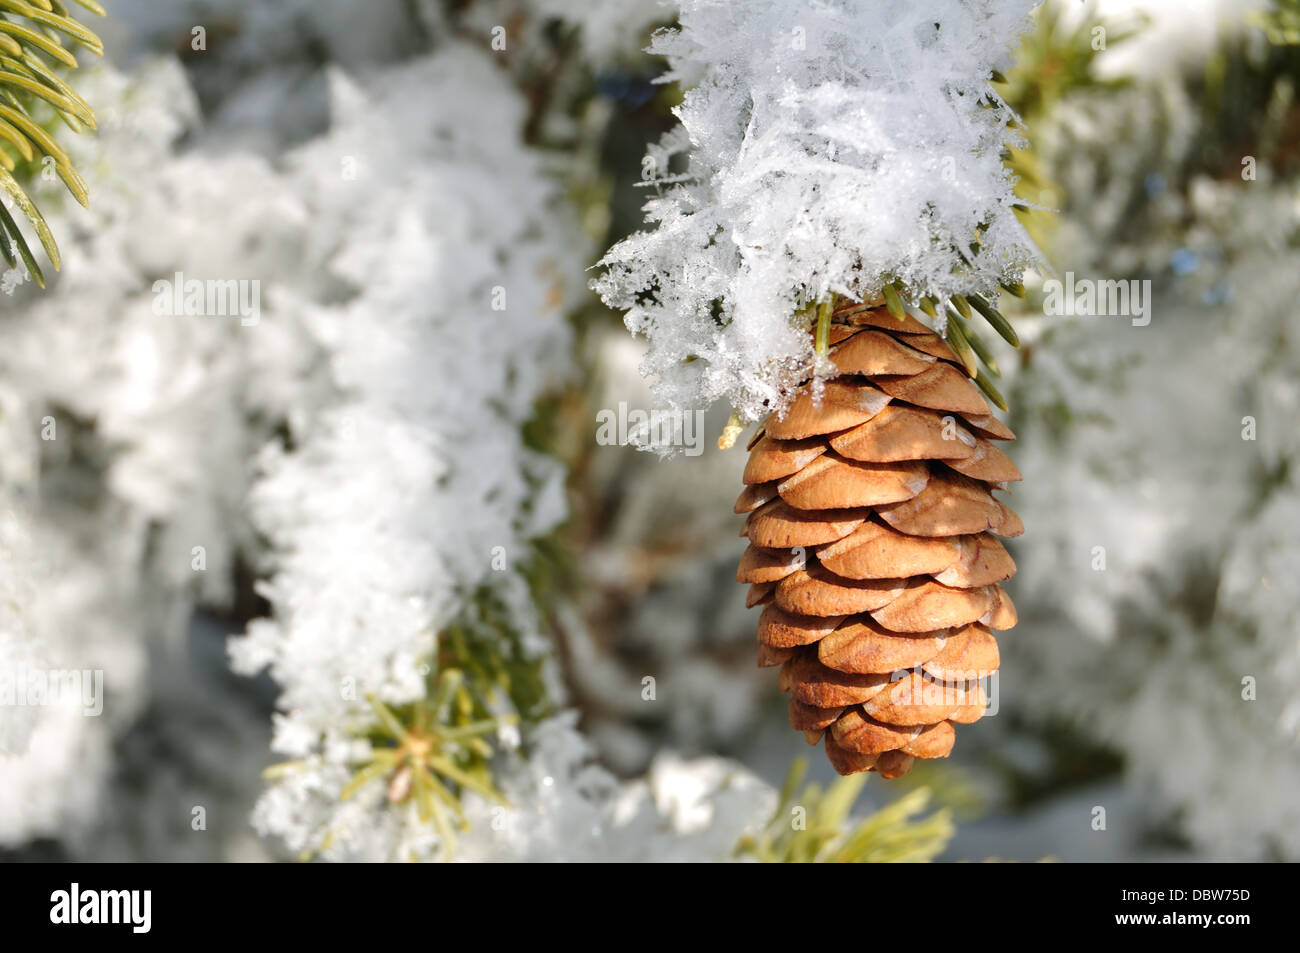 Pine cone on snow covered branch in winter - Stock Image